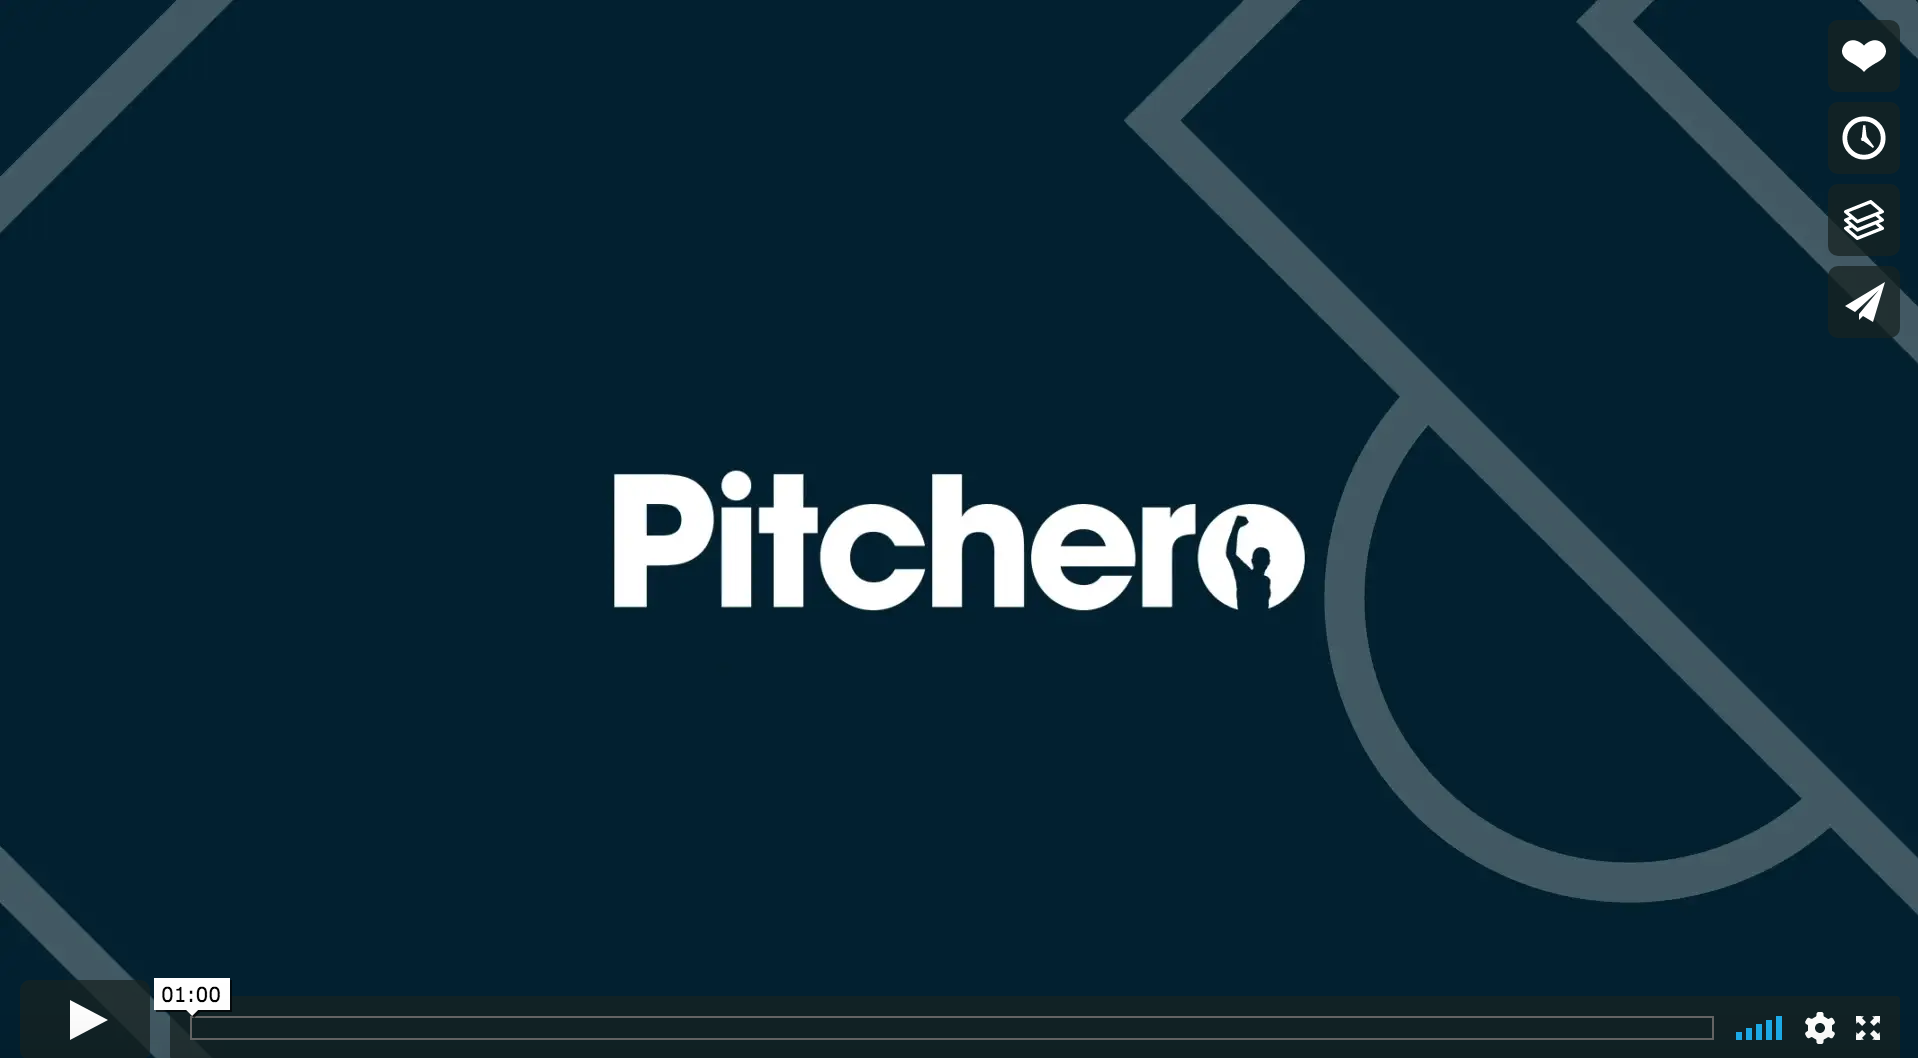 Pitchero video